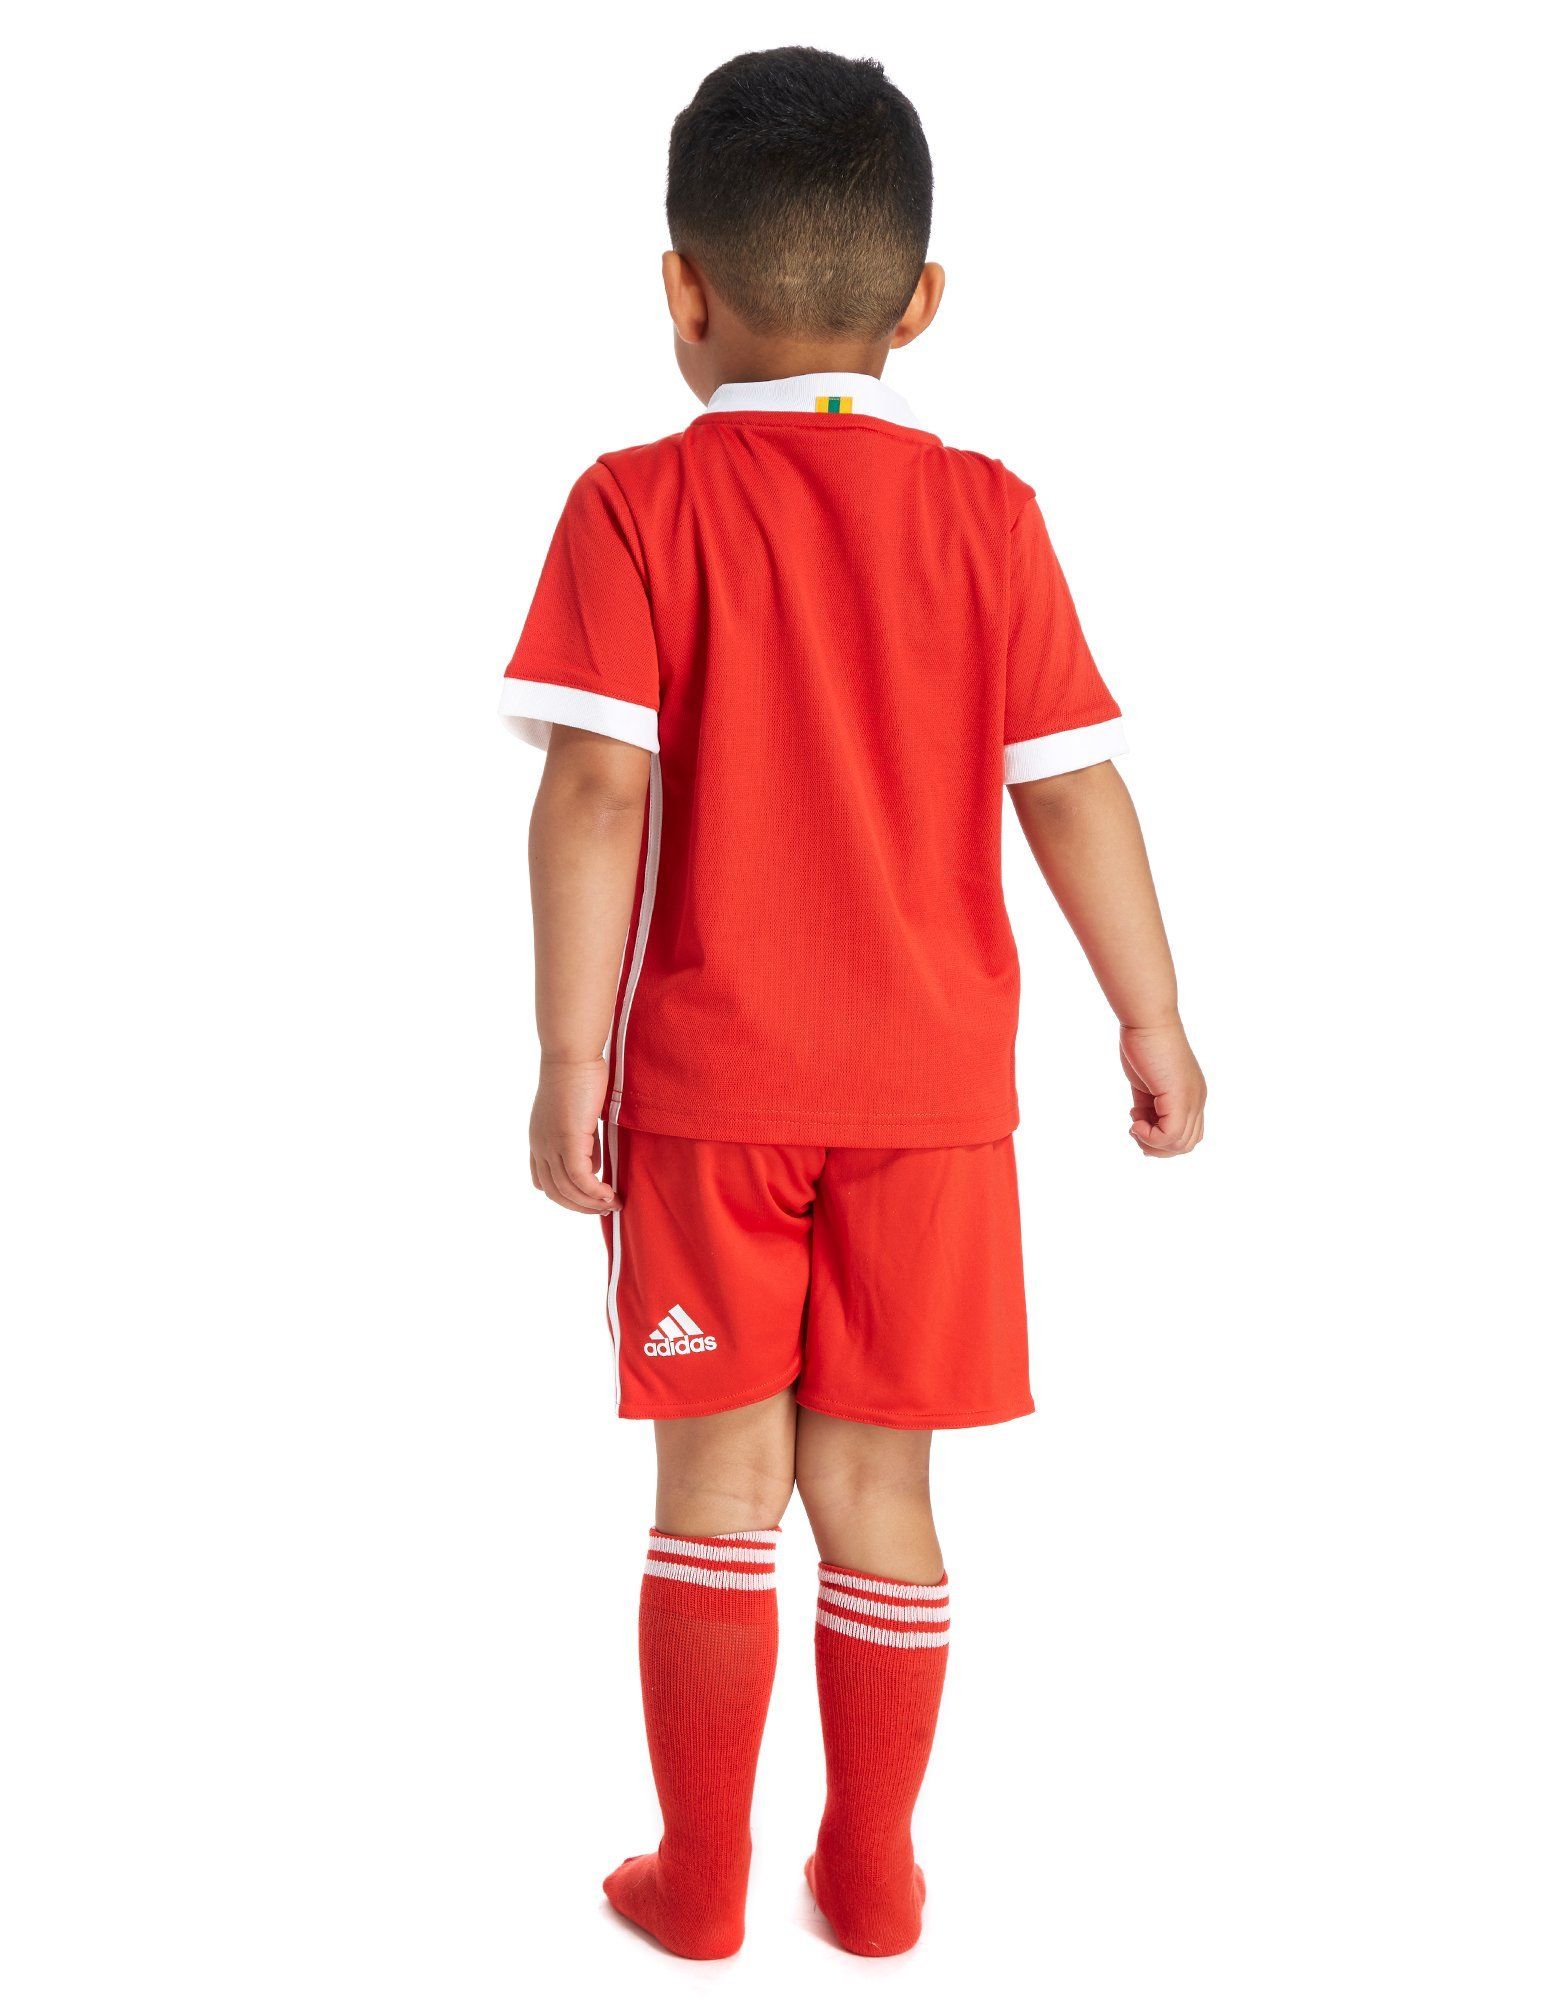 adidas Wales 2018/19 Home Kit Children